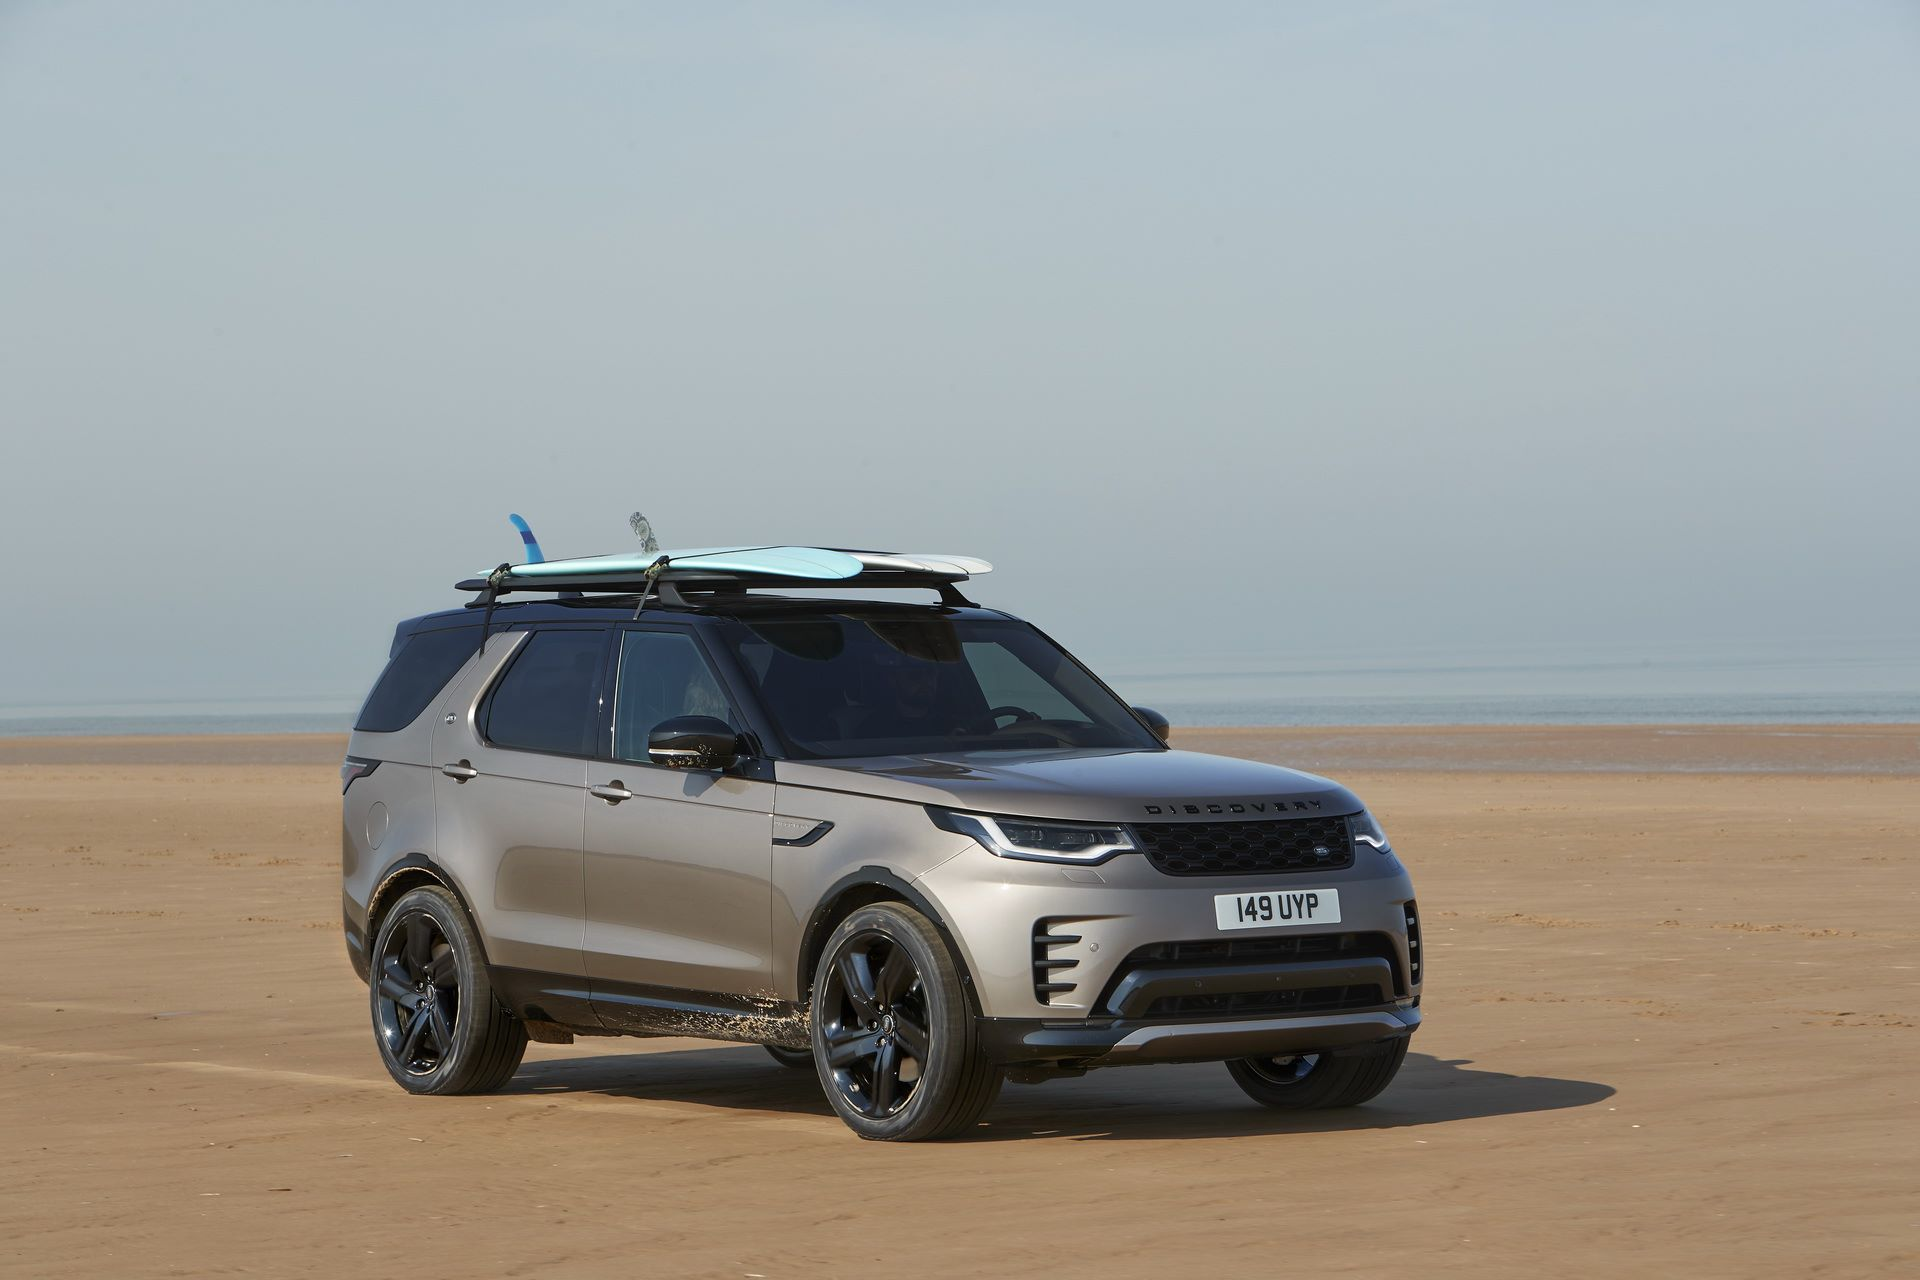 2021-Land-Rover-Discovery-72